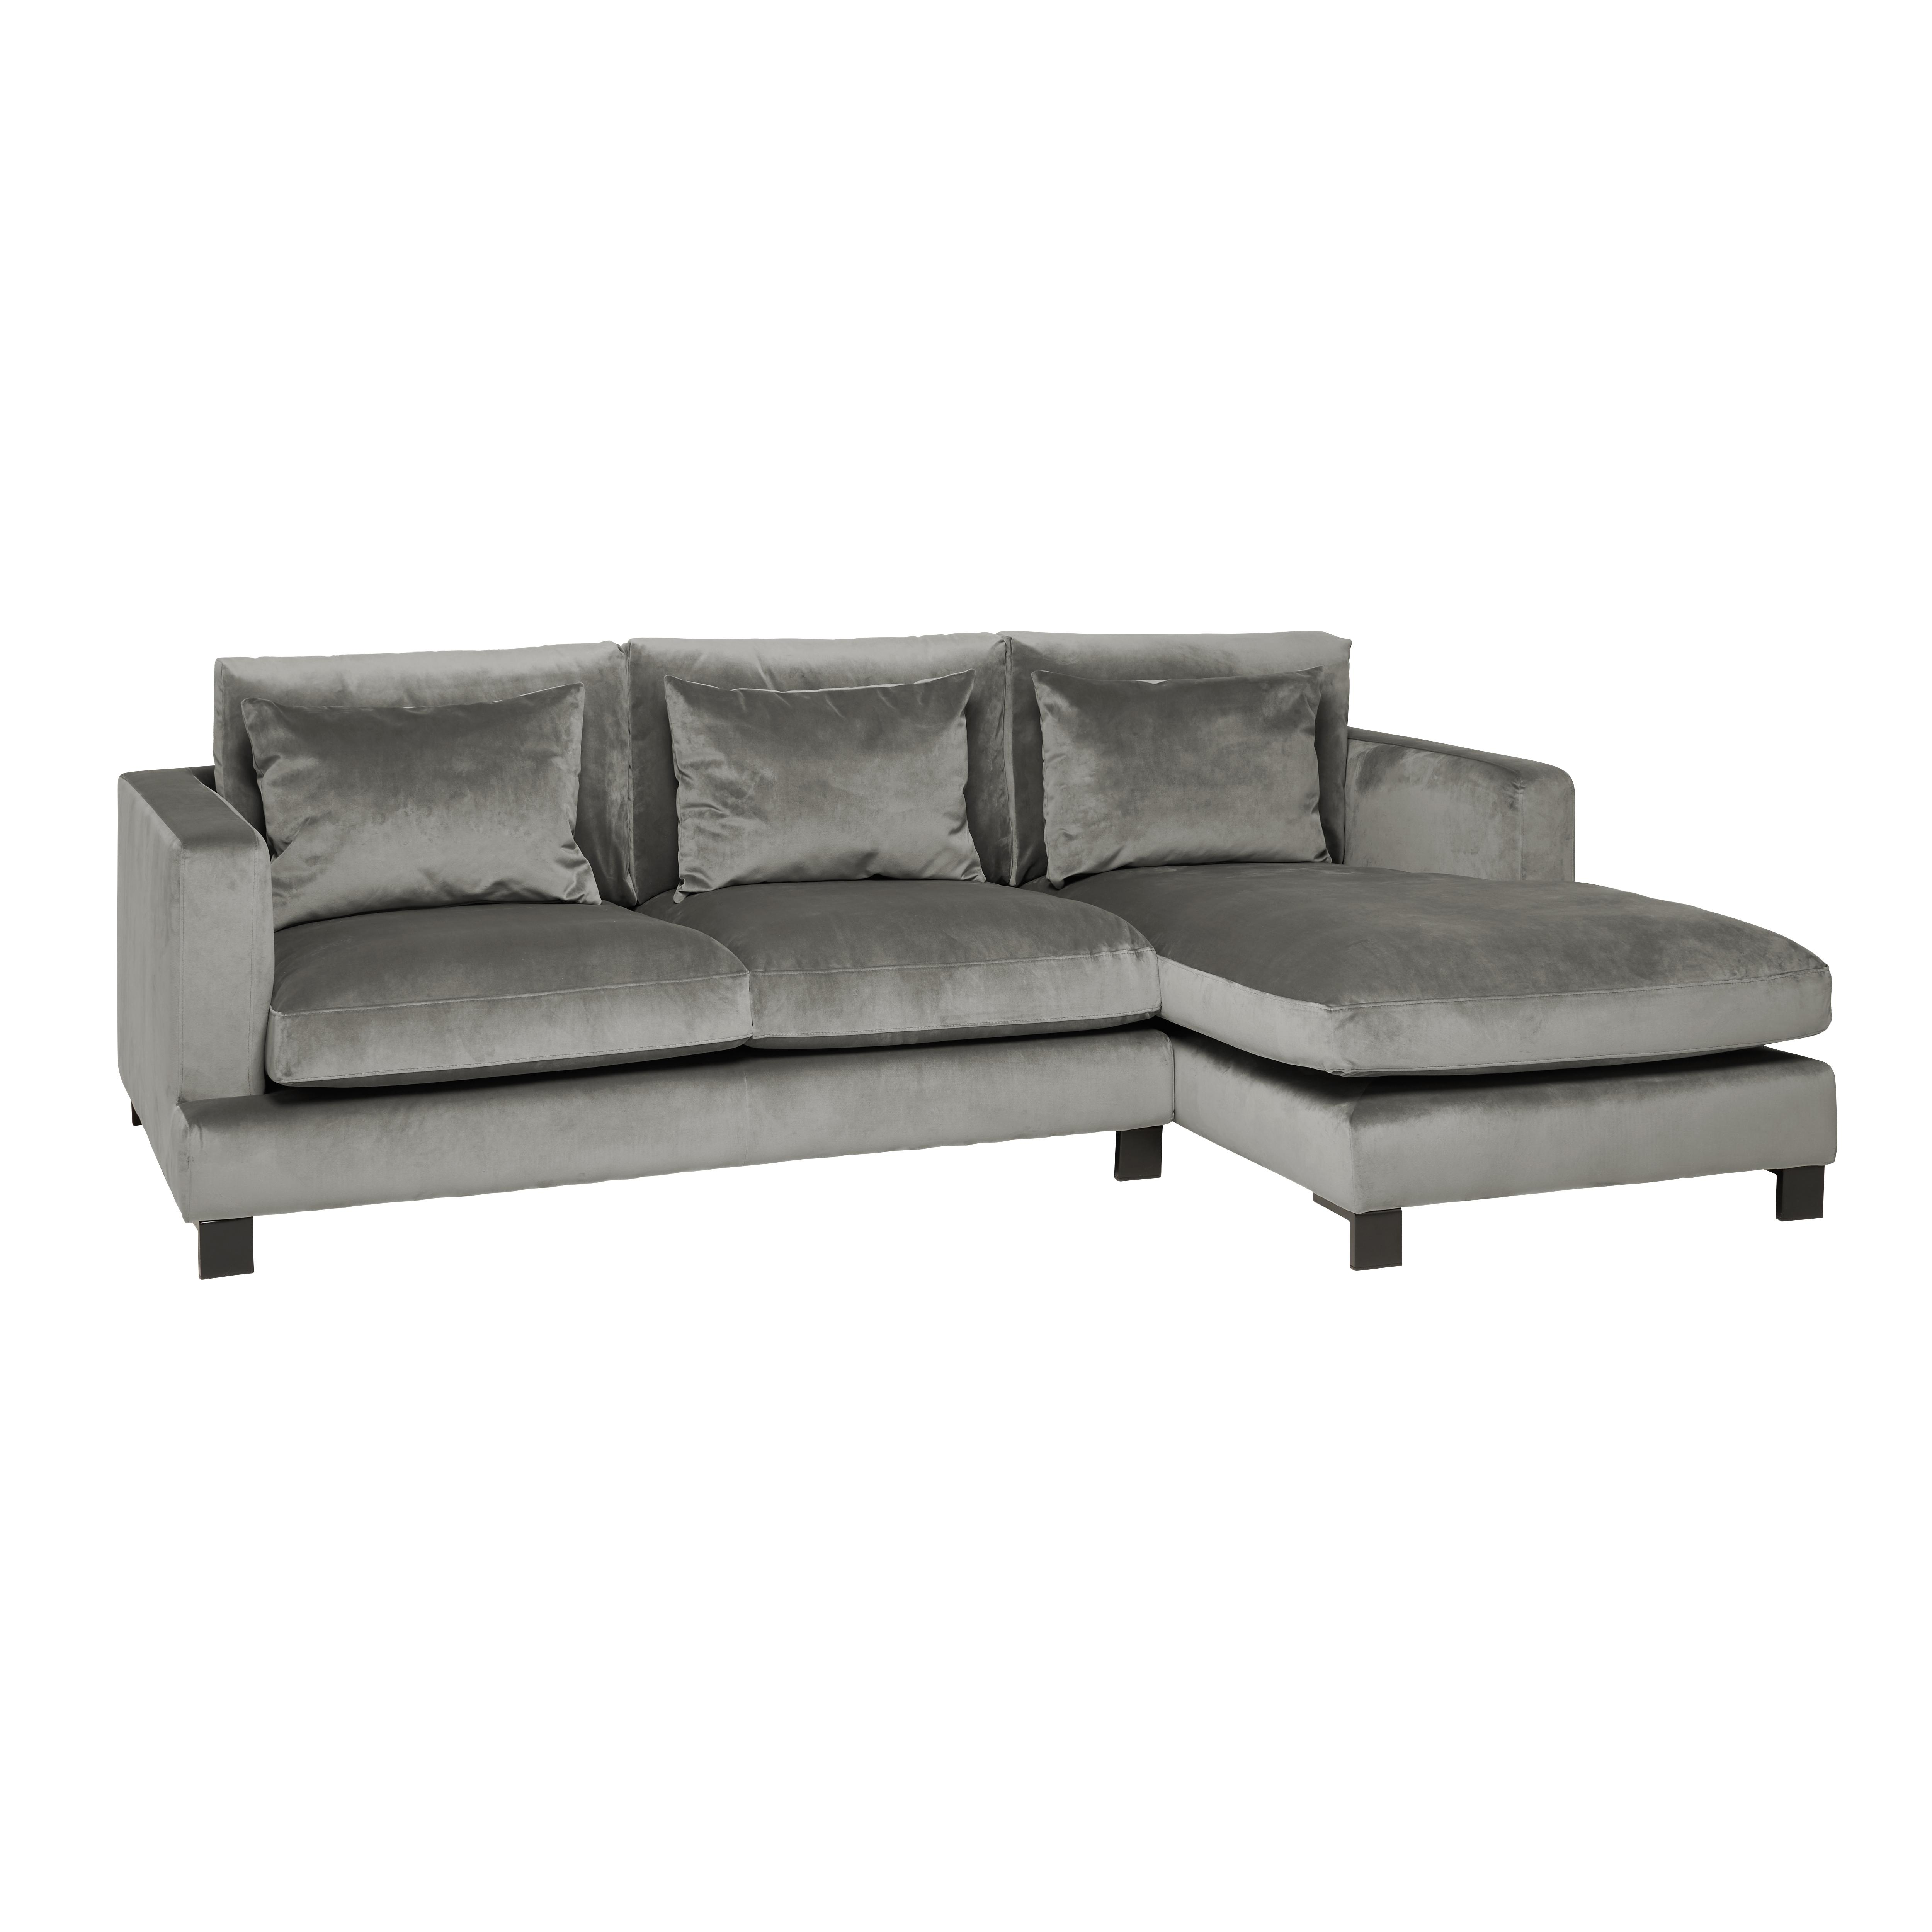 Lugano II right hand facing four seater chaise sofa alba velvet grey